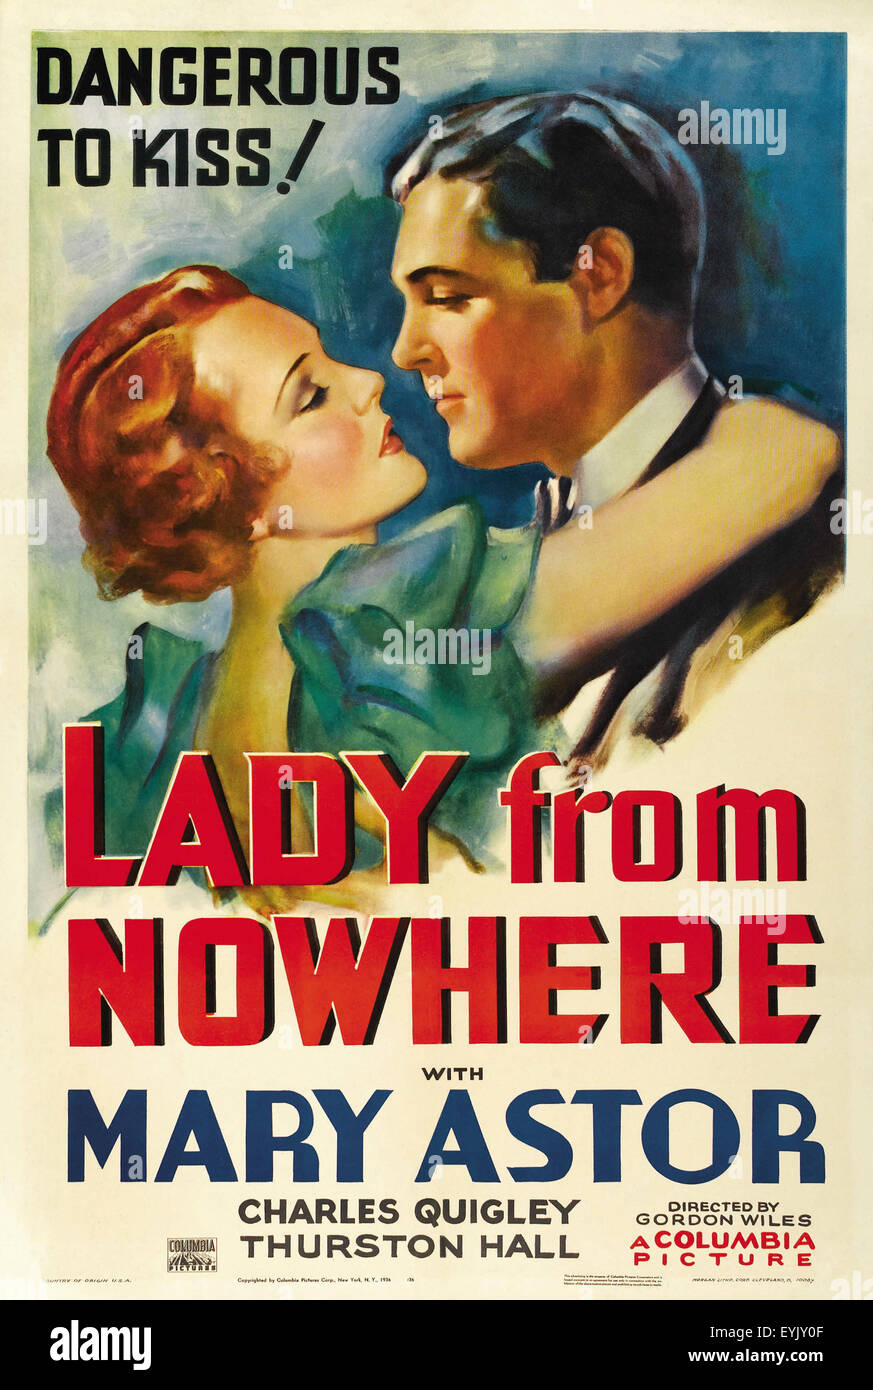 Lady From Nowhere - Mary Astor - Movie Poster - Stock Image